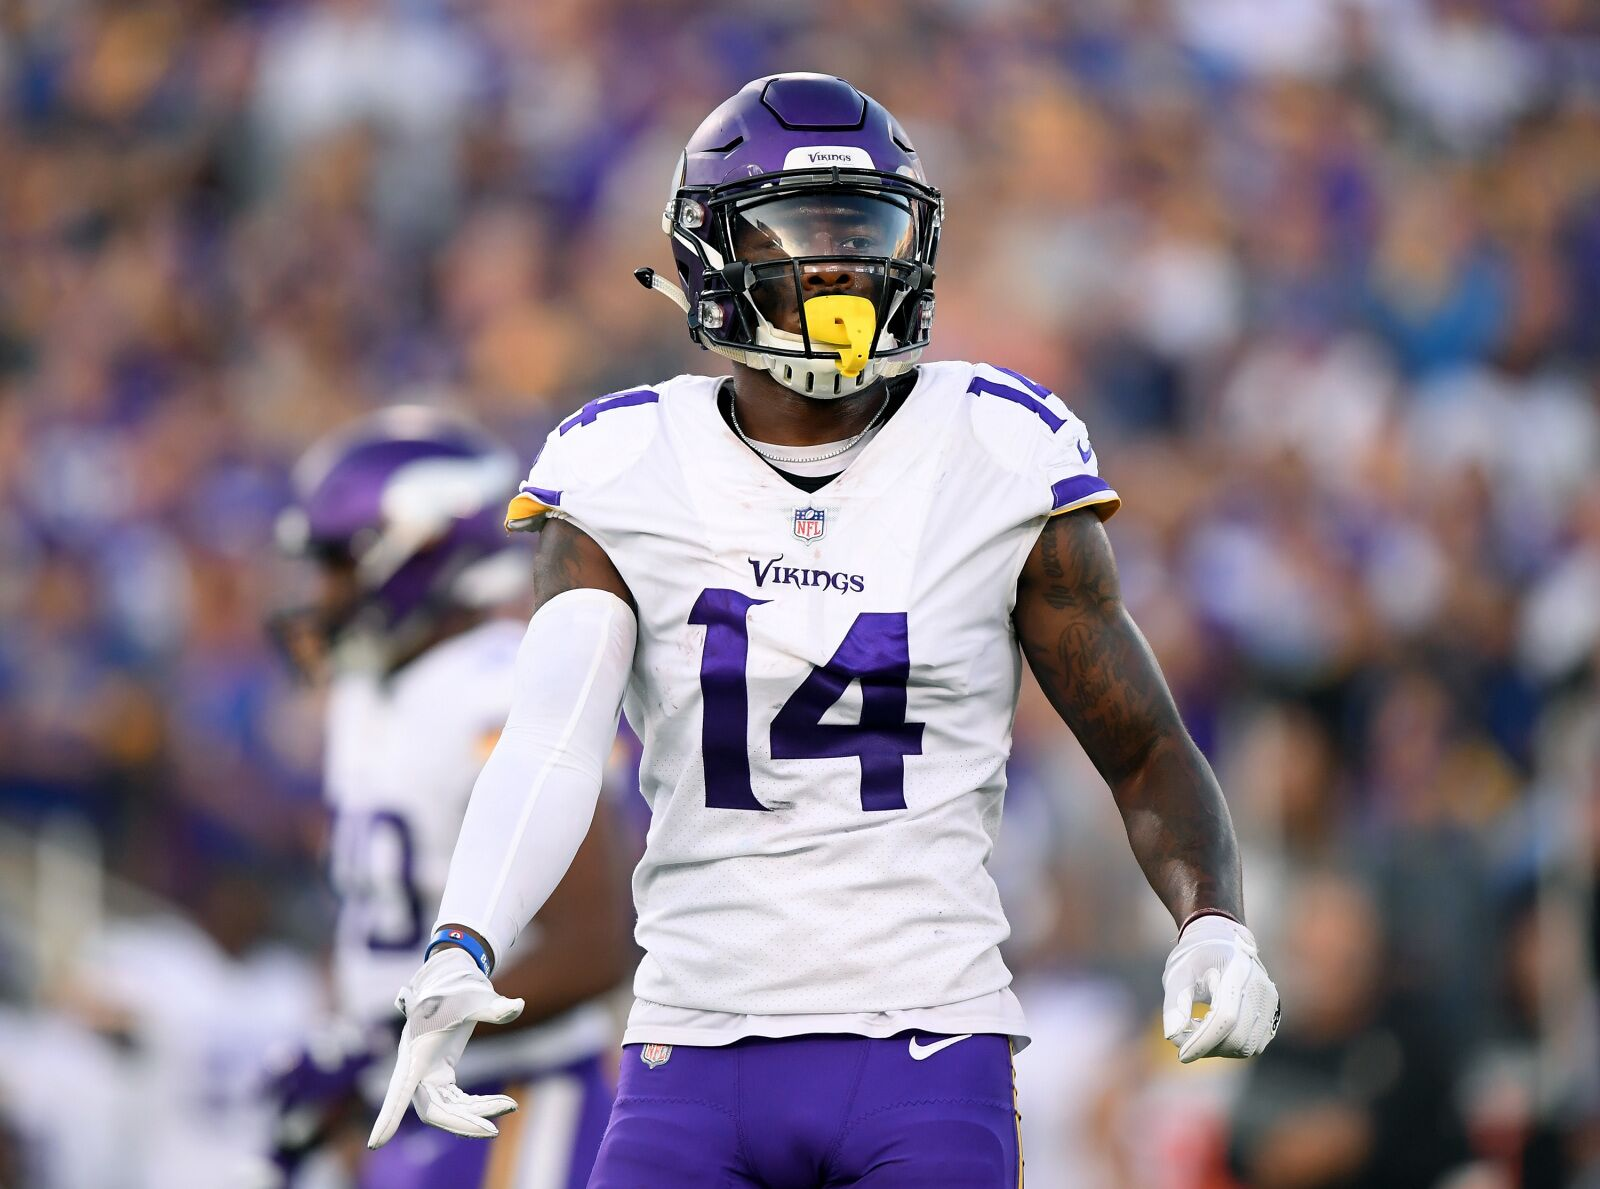 separation shoes a25e8 d42c5 Stefon Diggs' younger brother could play for the Vikings in 2019